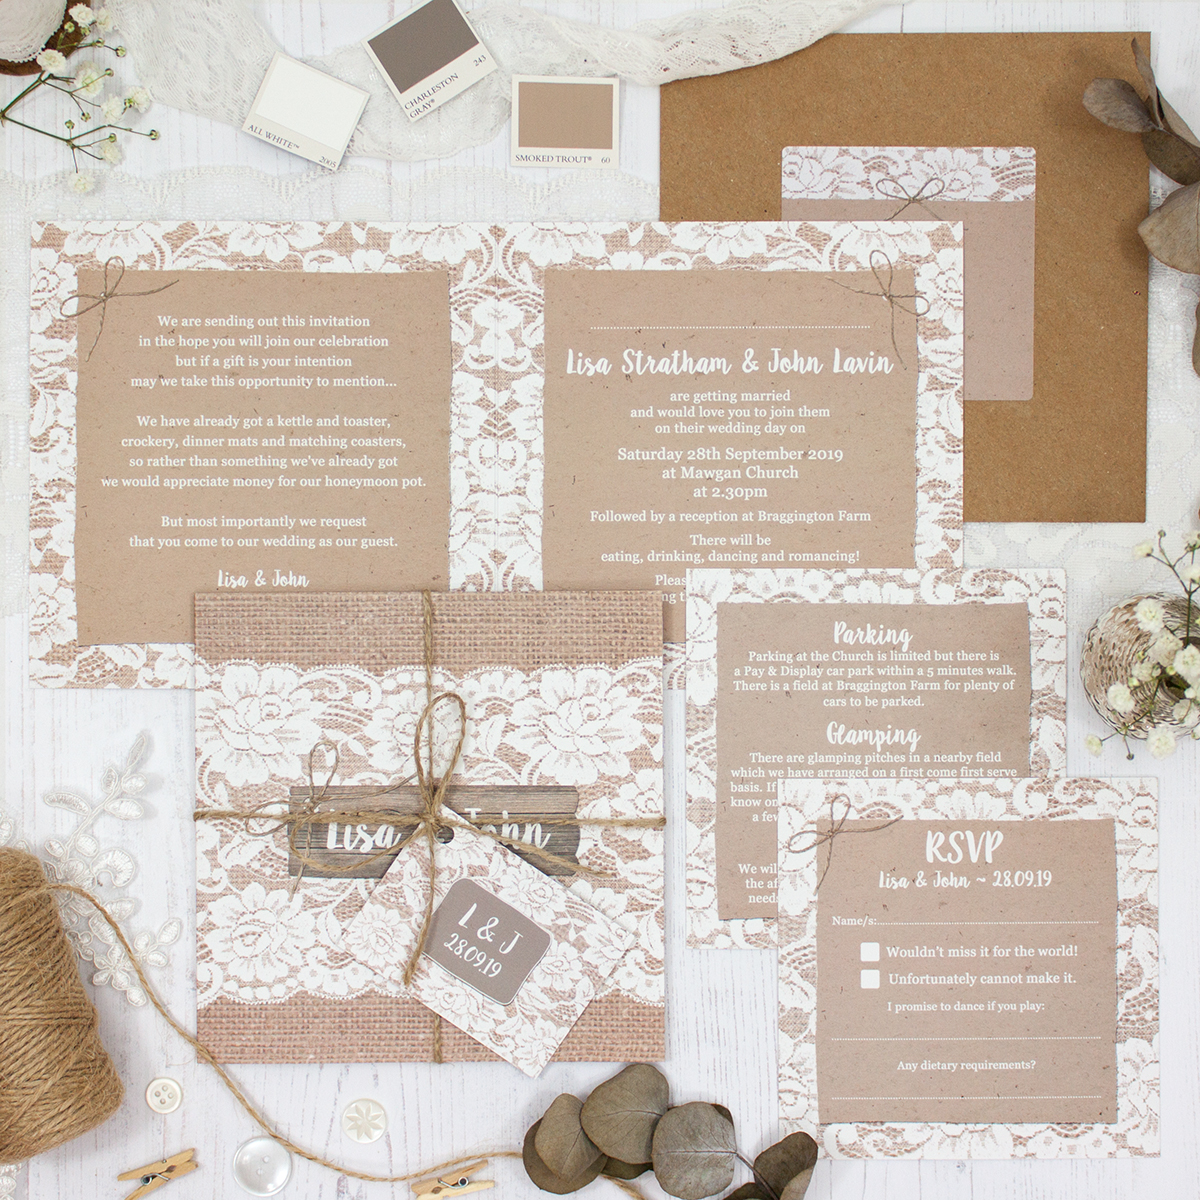 Chantilly Lace Wedding showing invitation